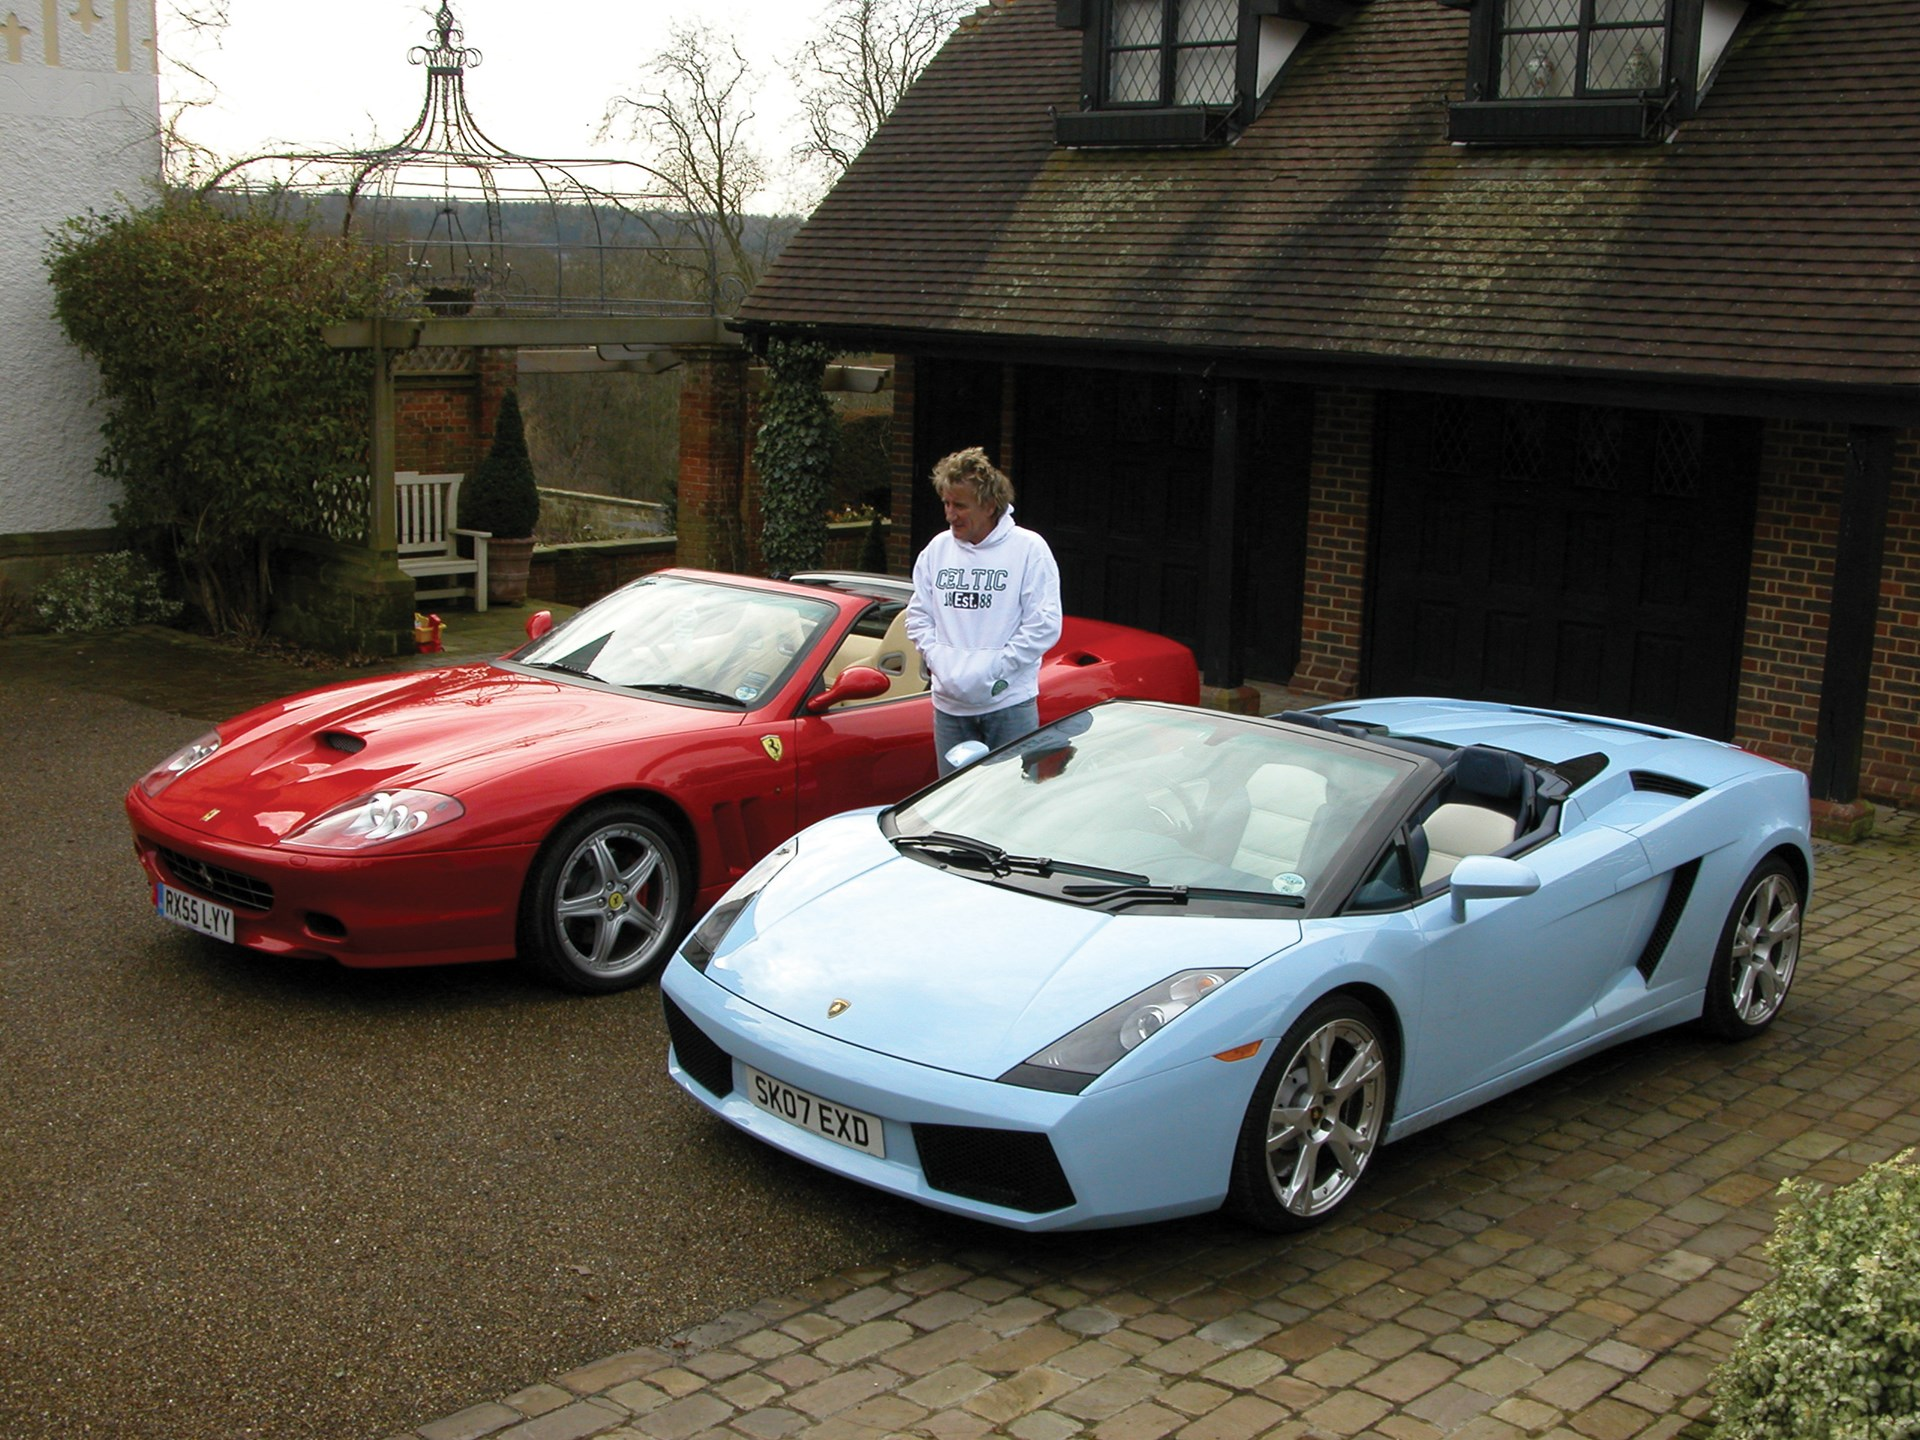 Rod Stewart poses with his Ferrari 575 Superamerica and Lamborghini Gallardo Spyder outside his home in 2009.